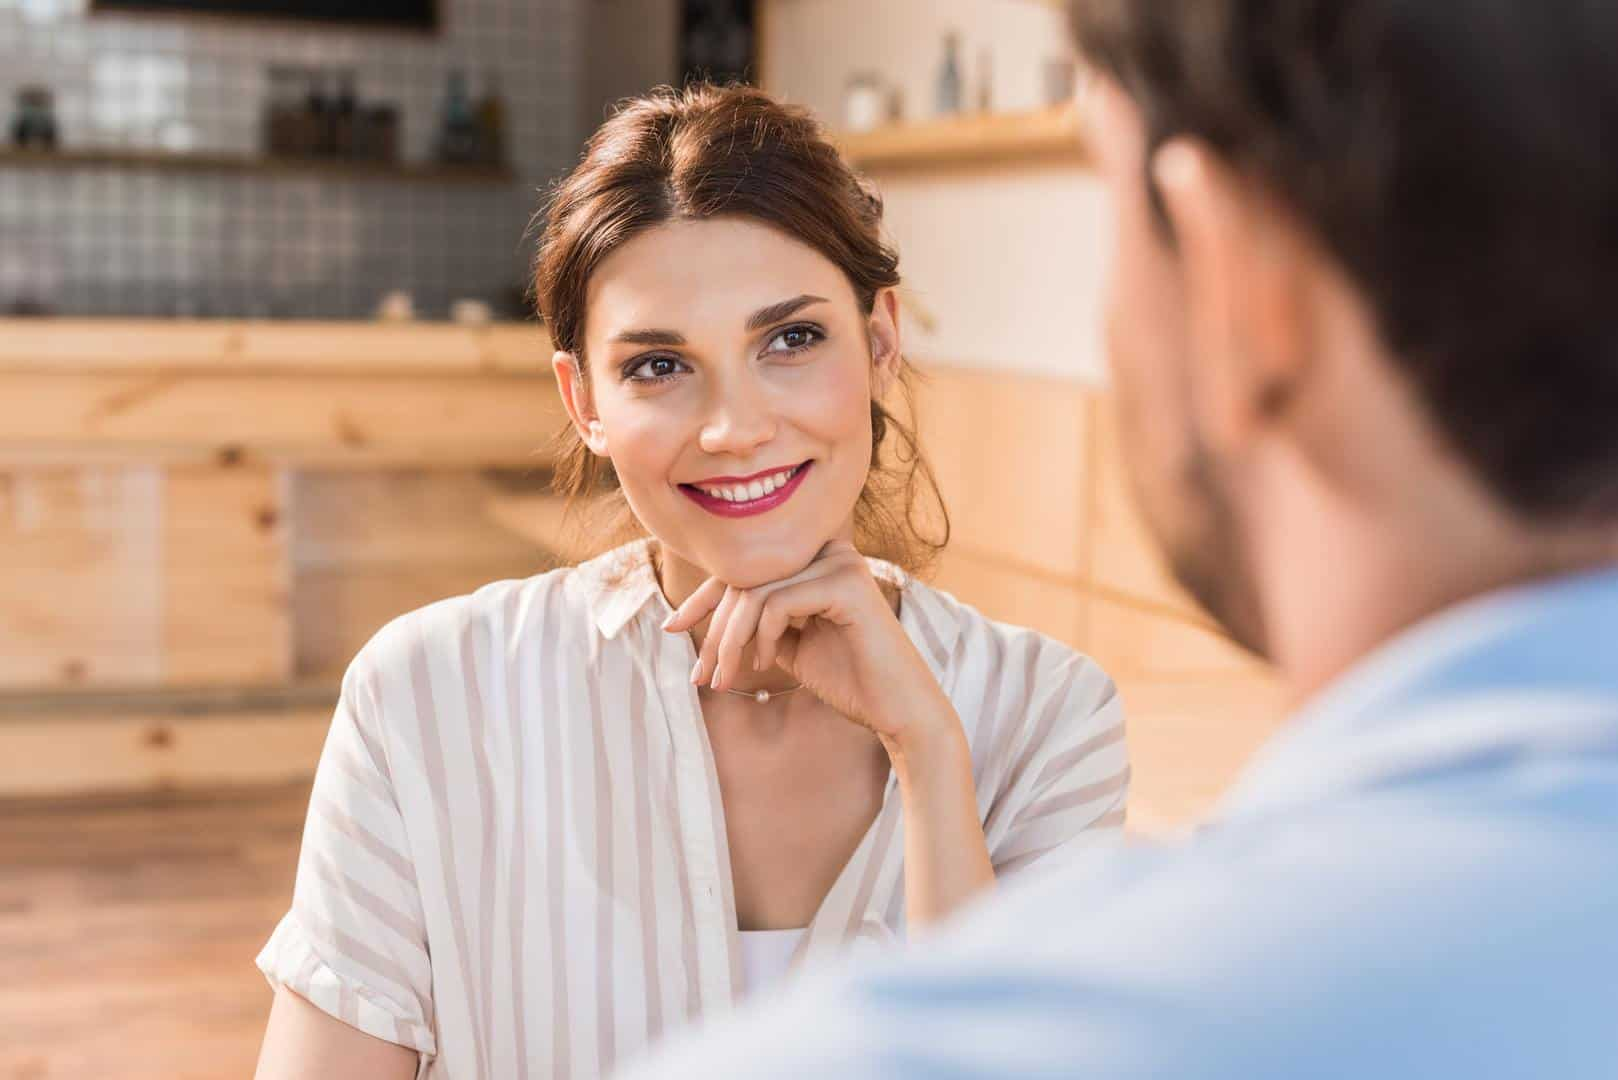 Read more about the article DATING AFTER DIVORCE